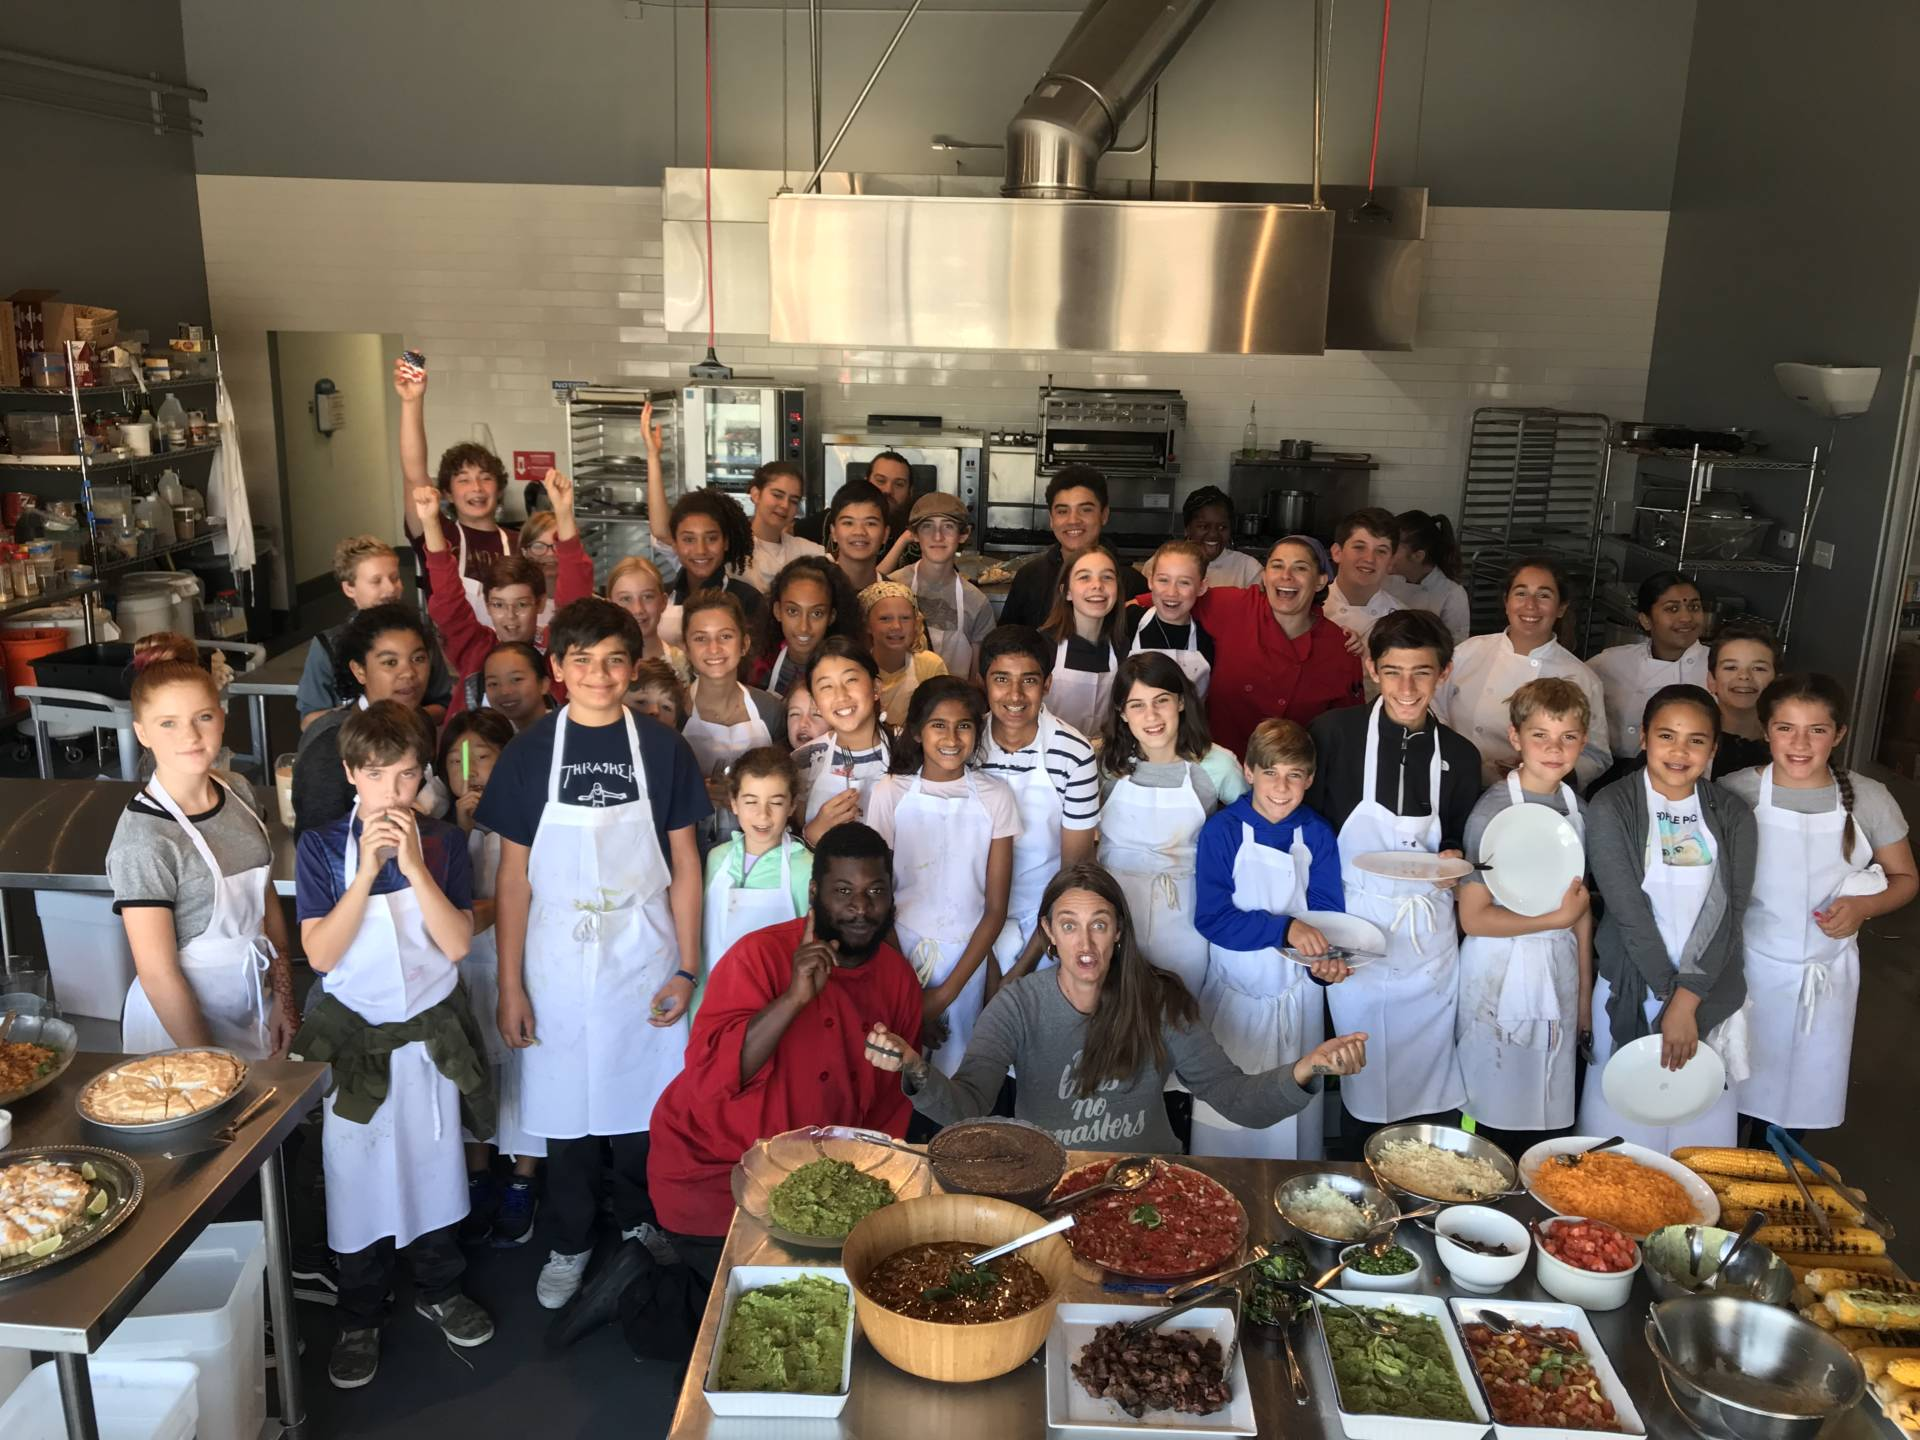 Students at Cook! Program pose for a group shot during a course.